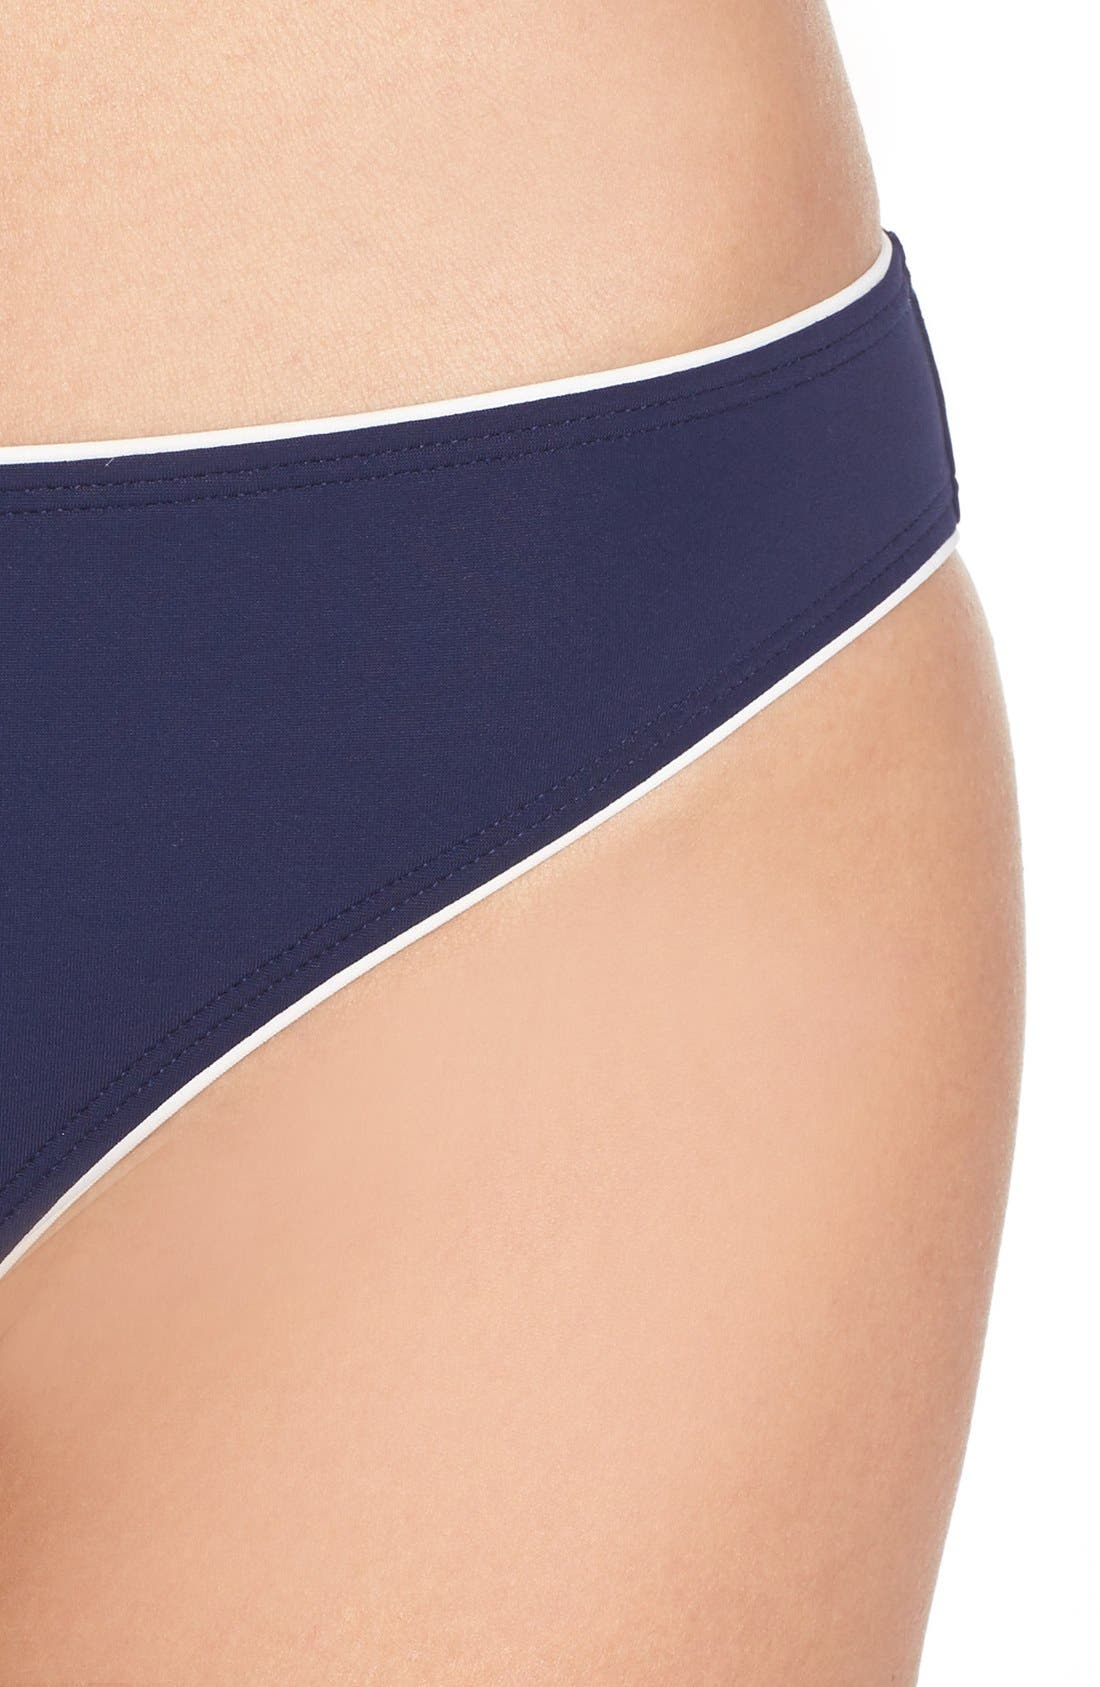 Alternate Image 4  - Tory Burch Riviera Hipster Bikini Bottoms